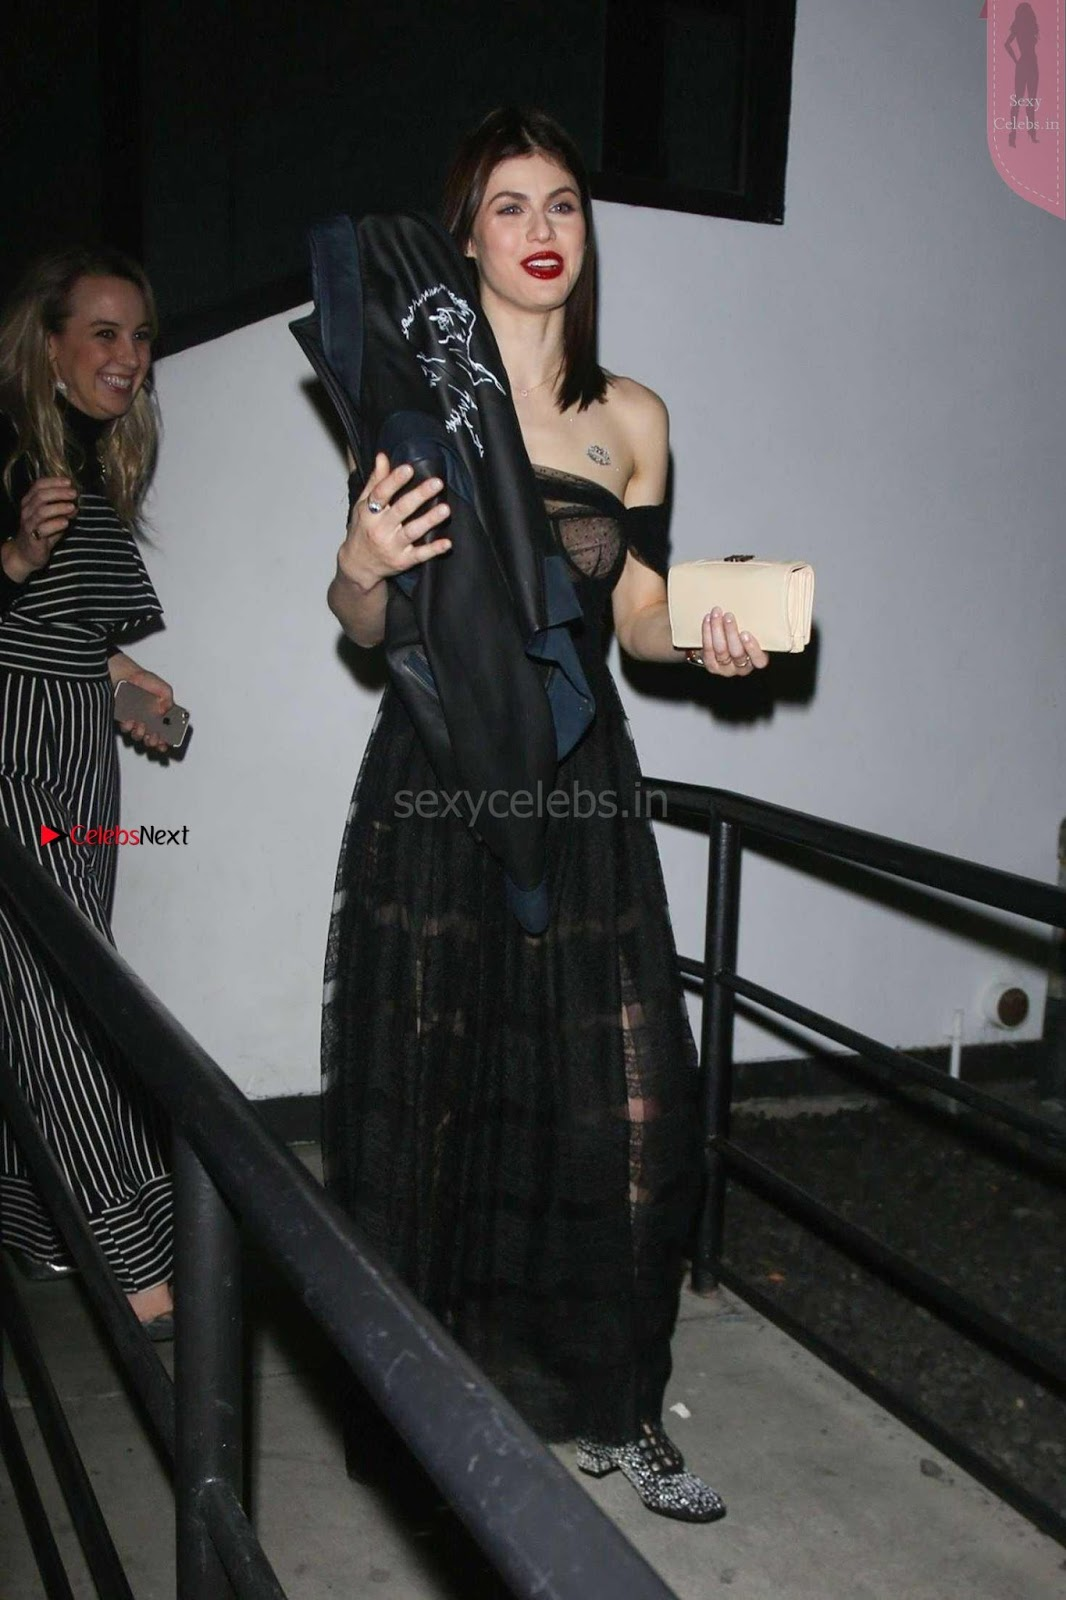 Alexandra Daddario Showing off her tits in transparent top at Dior Addict Lacquer Pump Launch ~ SexyCelebs.in Exclusive